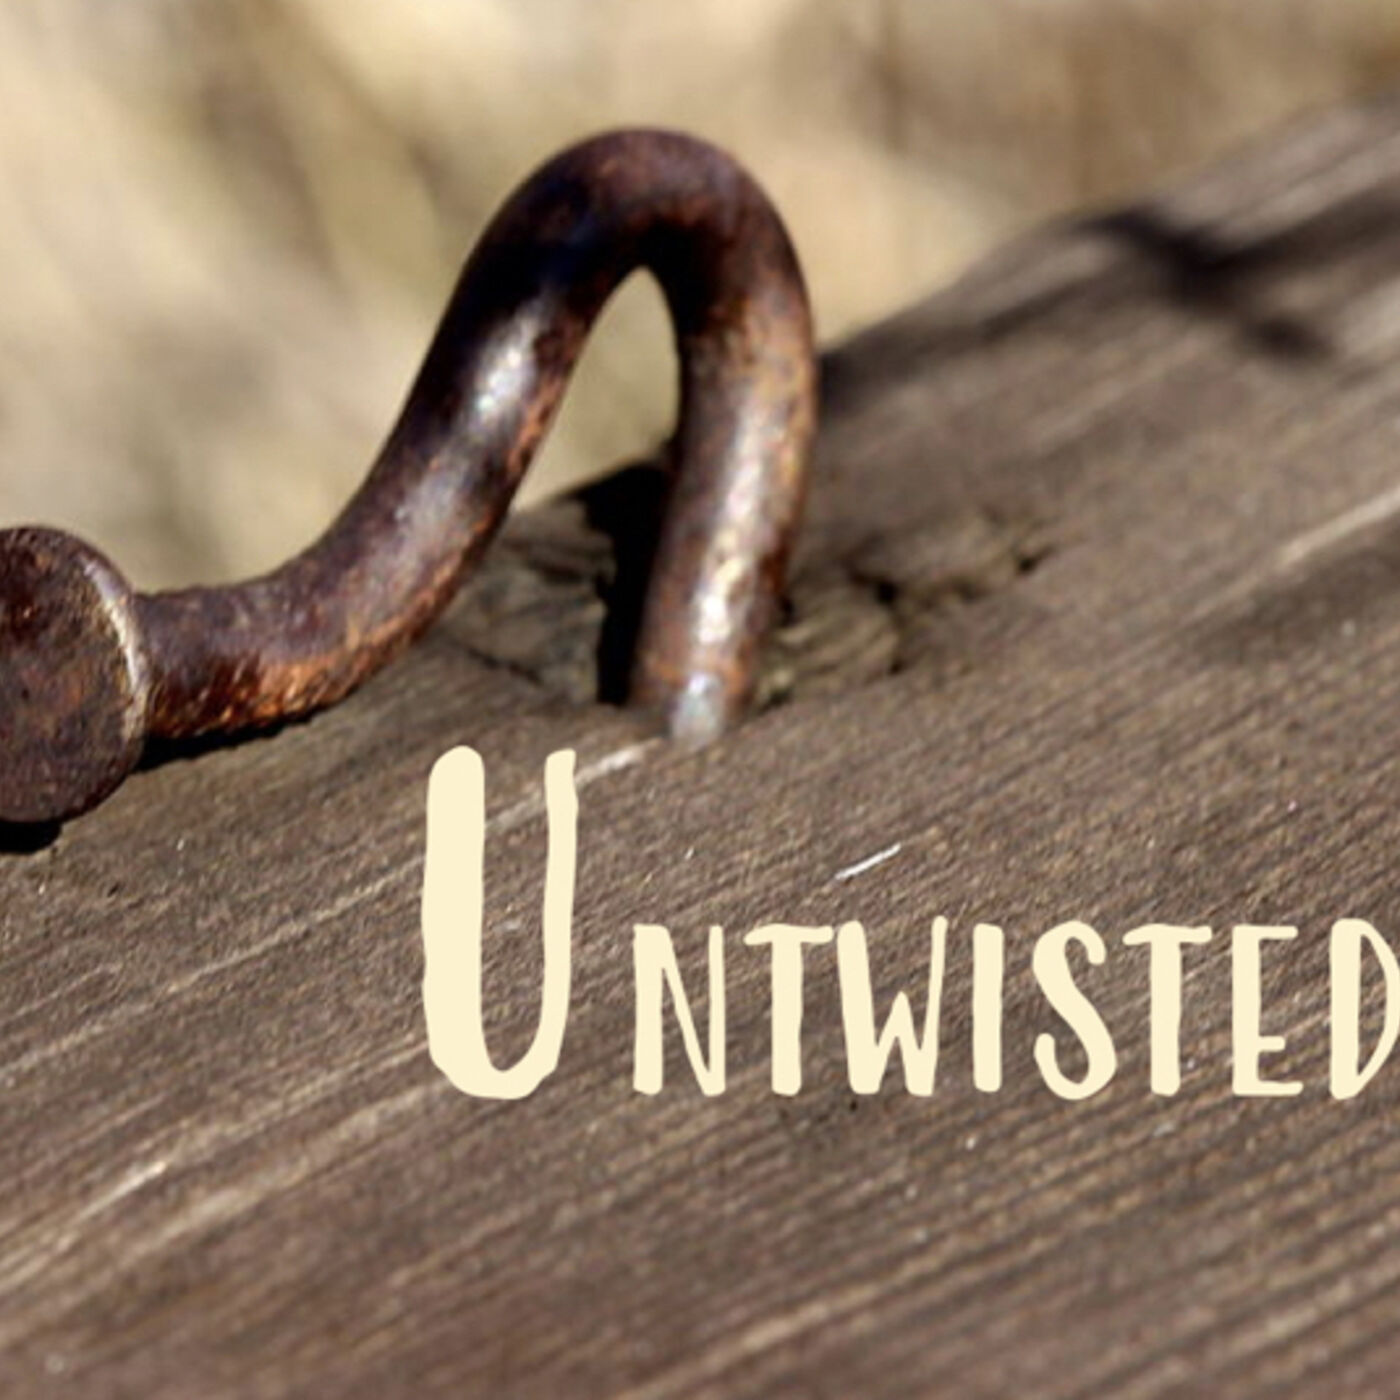 Untwisted: Love in Action (Kindness)